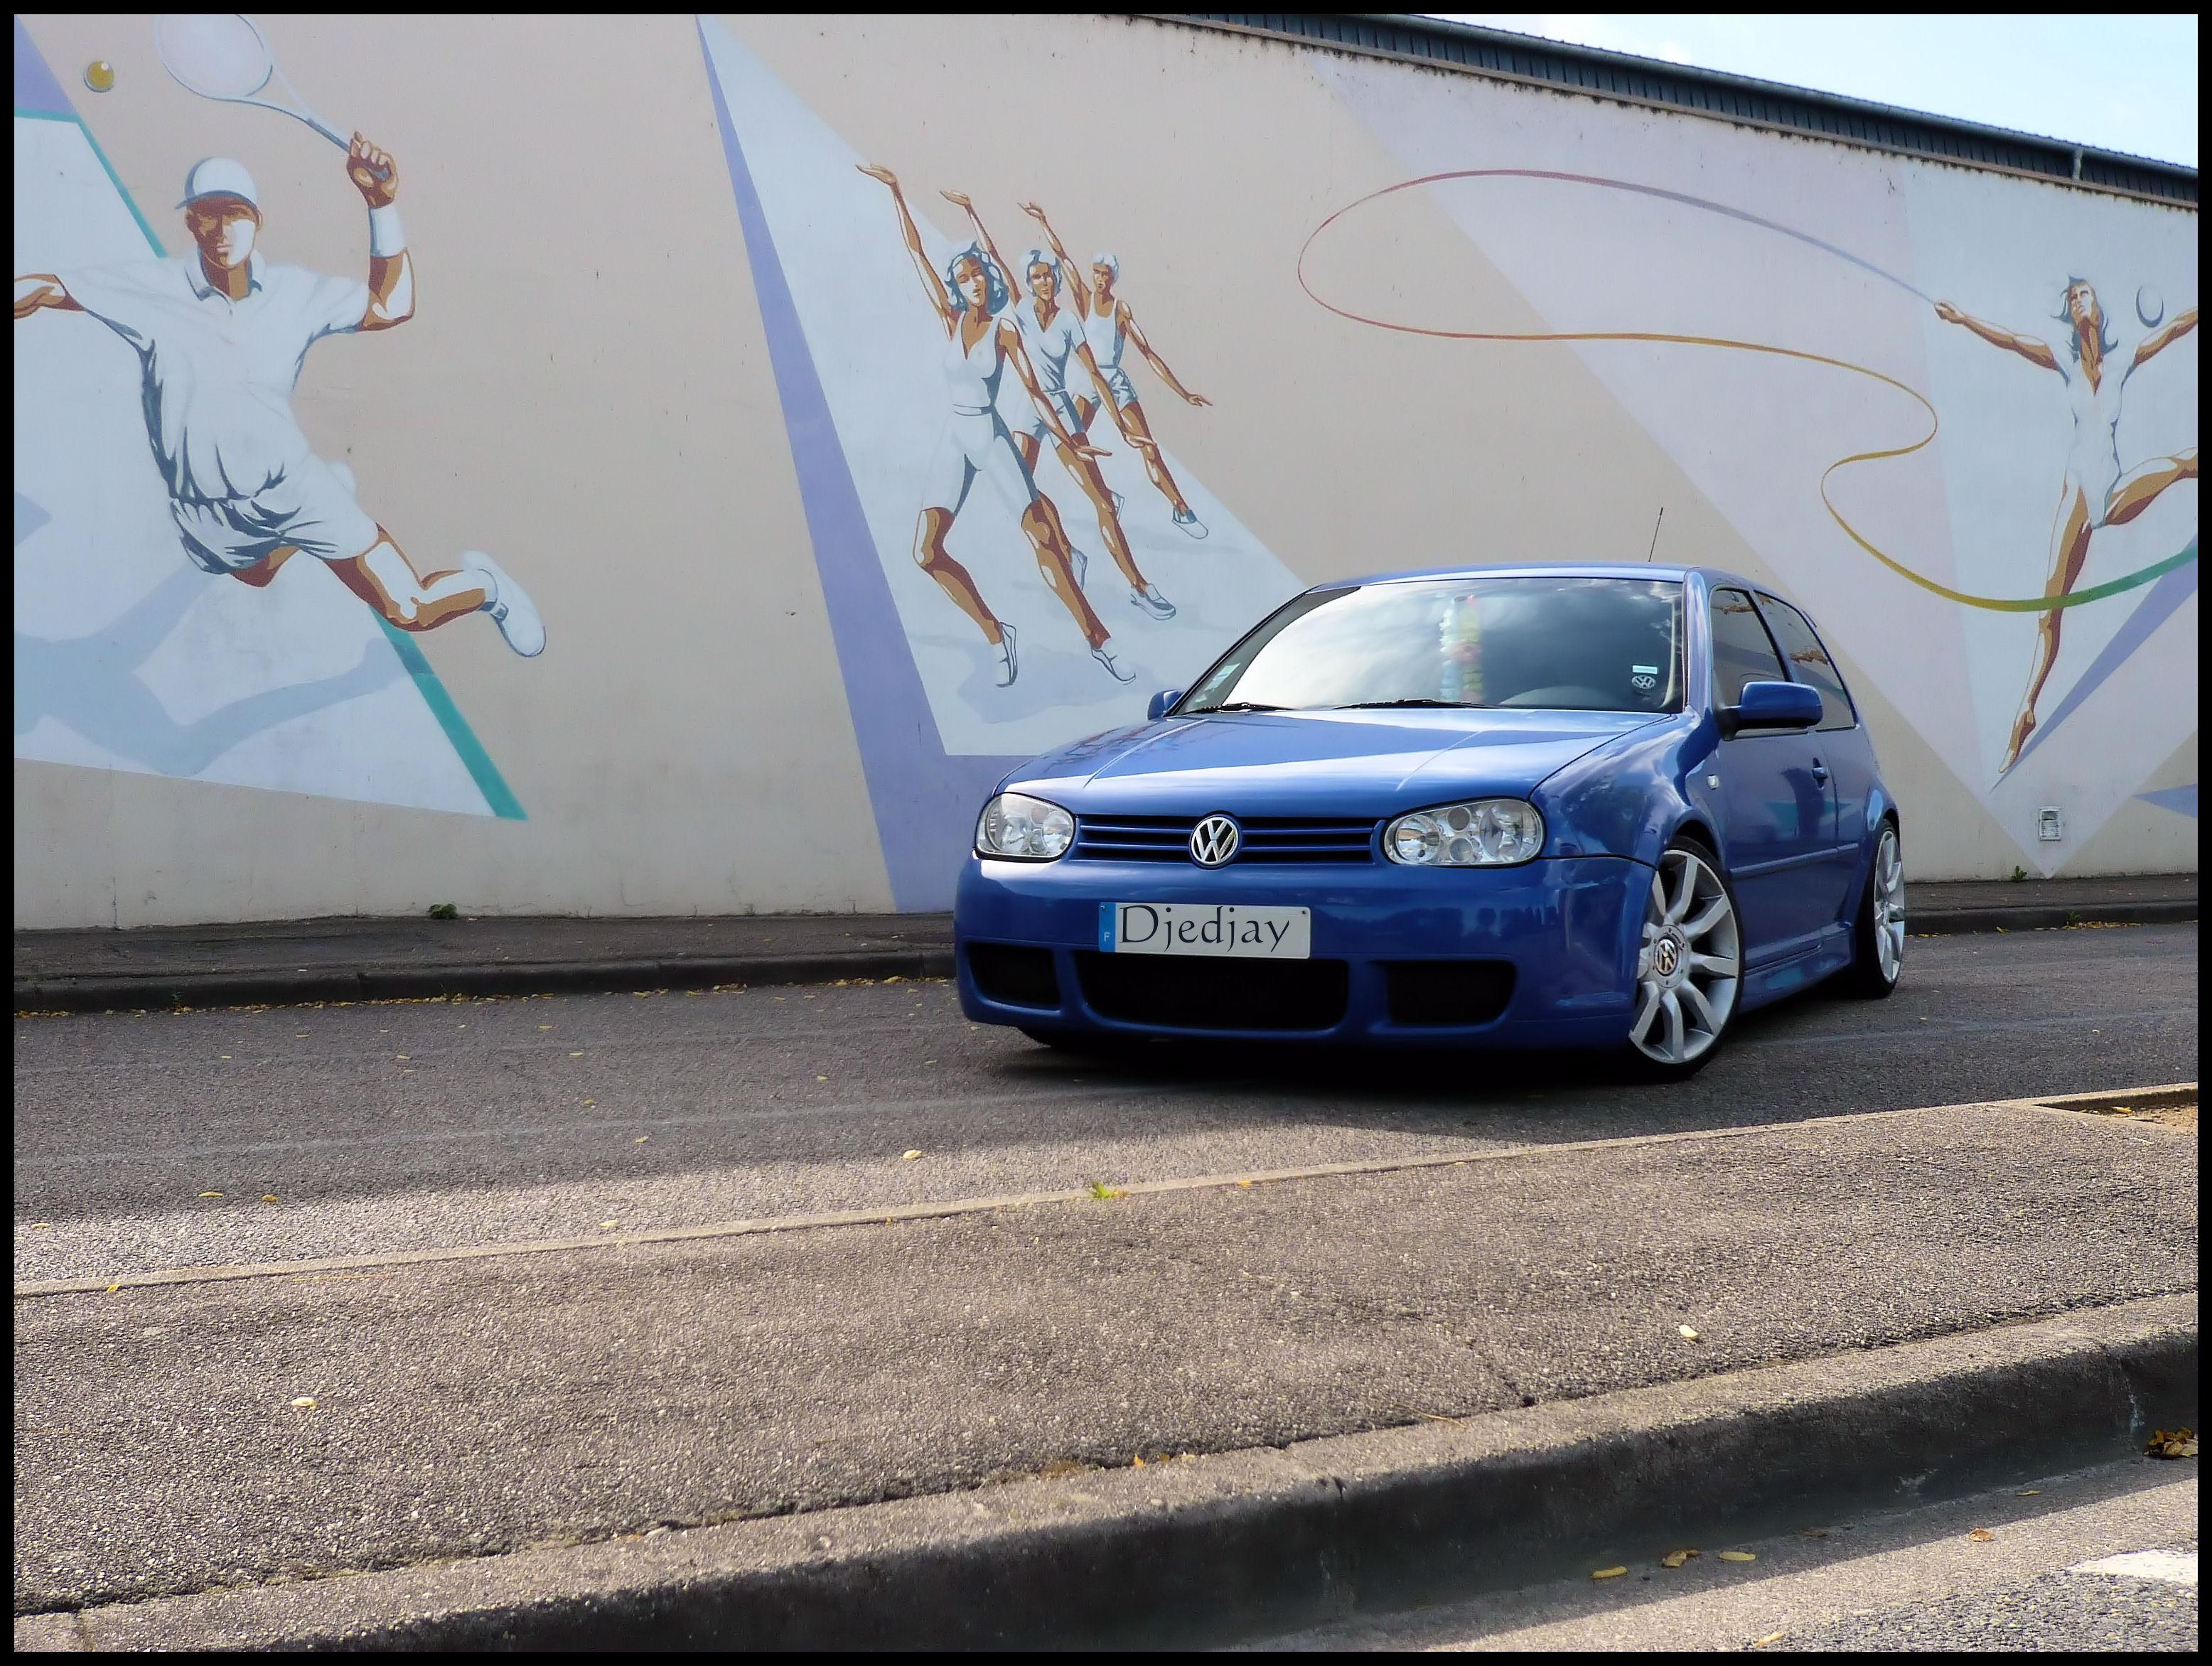 golf iv bleu nogaro retour stock garage des golf iv tdi 110 page 7 forum volkswagen. Black Bedroom Furniture Sets. Home Design Ideas